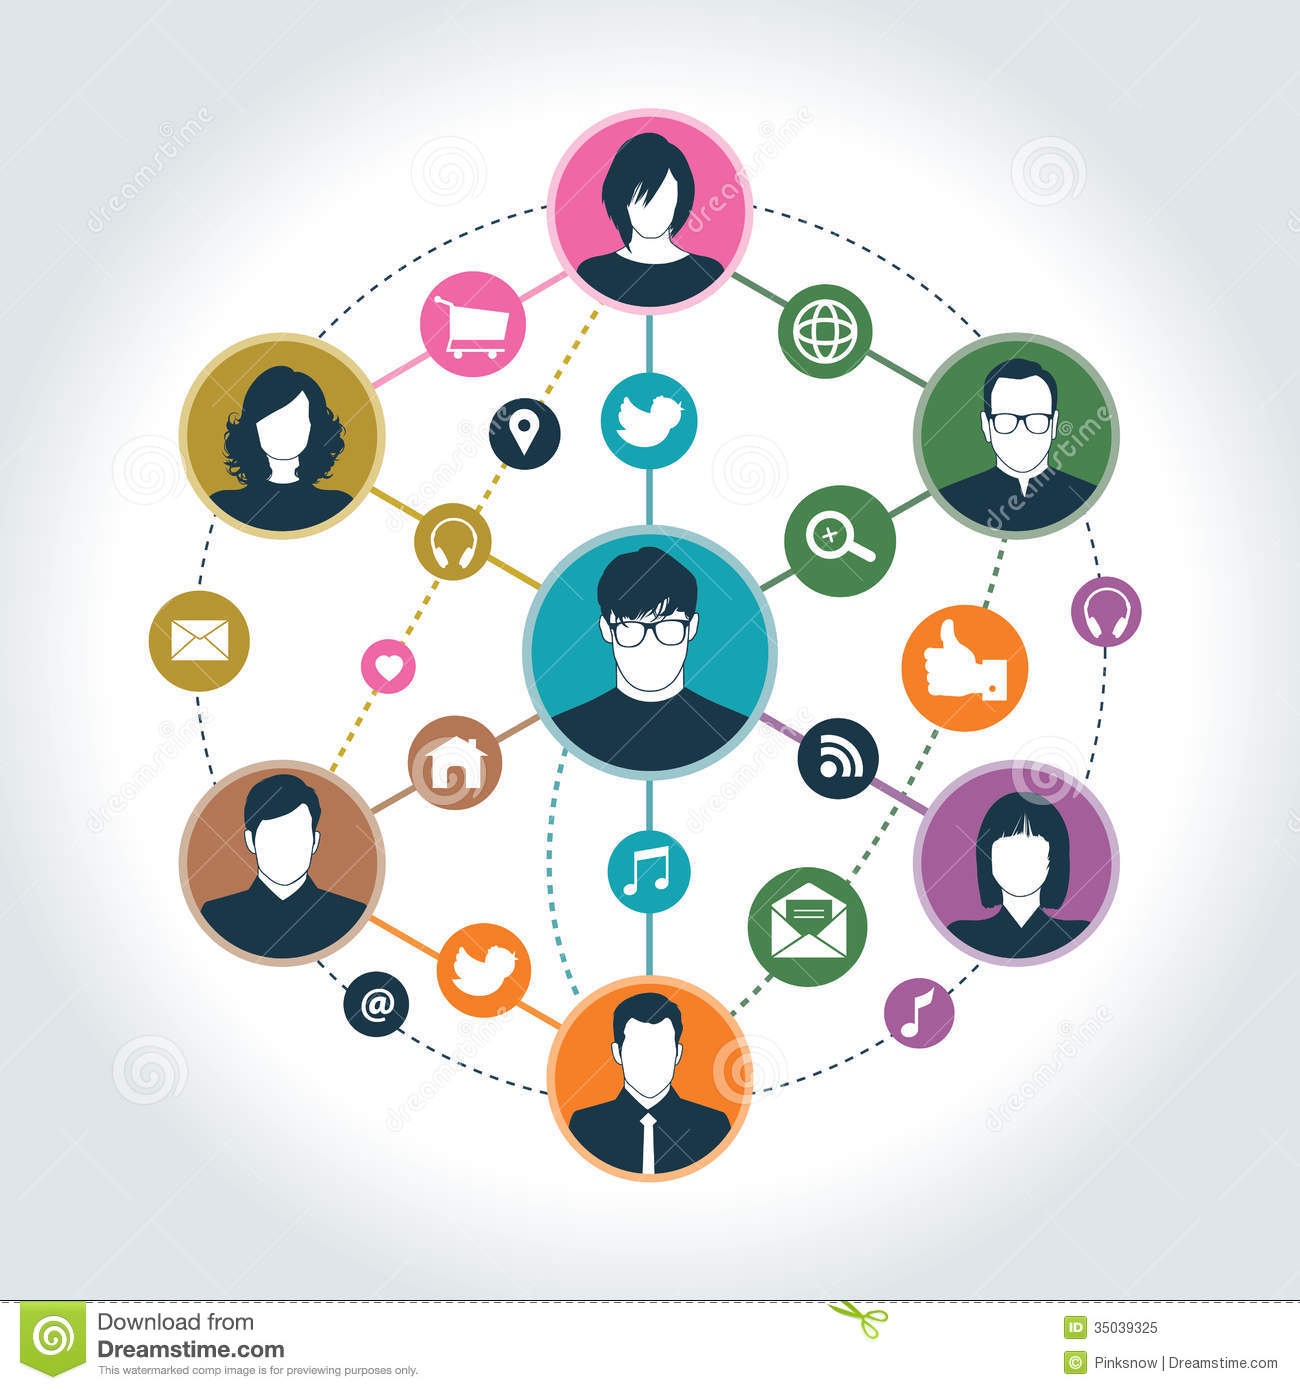 how to create a social network for free